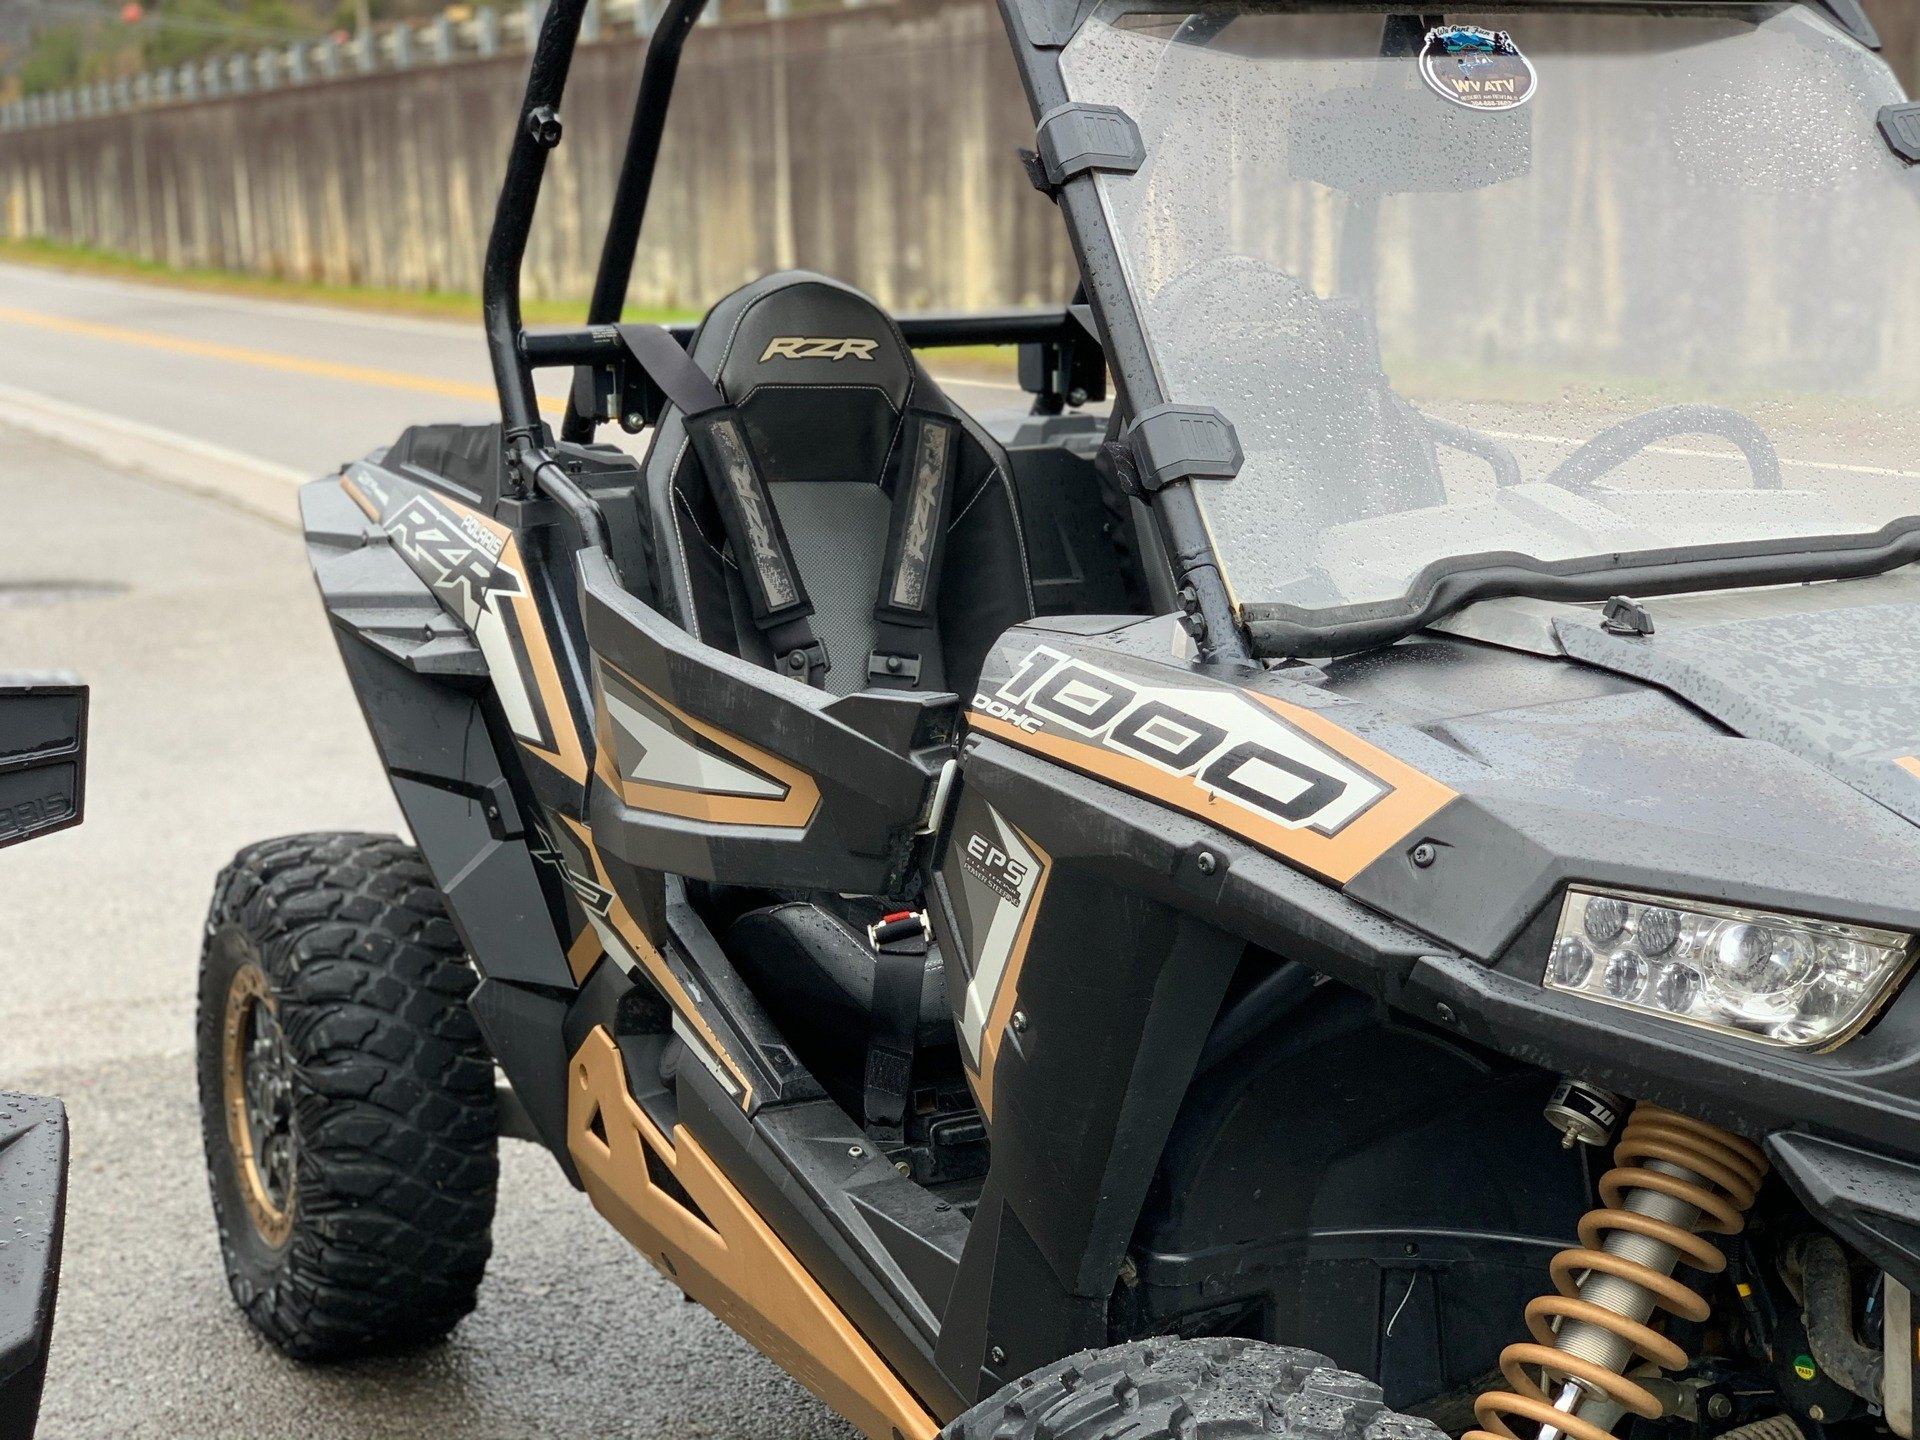 2018 Polaris RZR XP 1000 EPS Trails and Rocks Edition in Pikeville, Kentucky - Photo 7